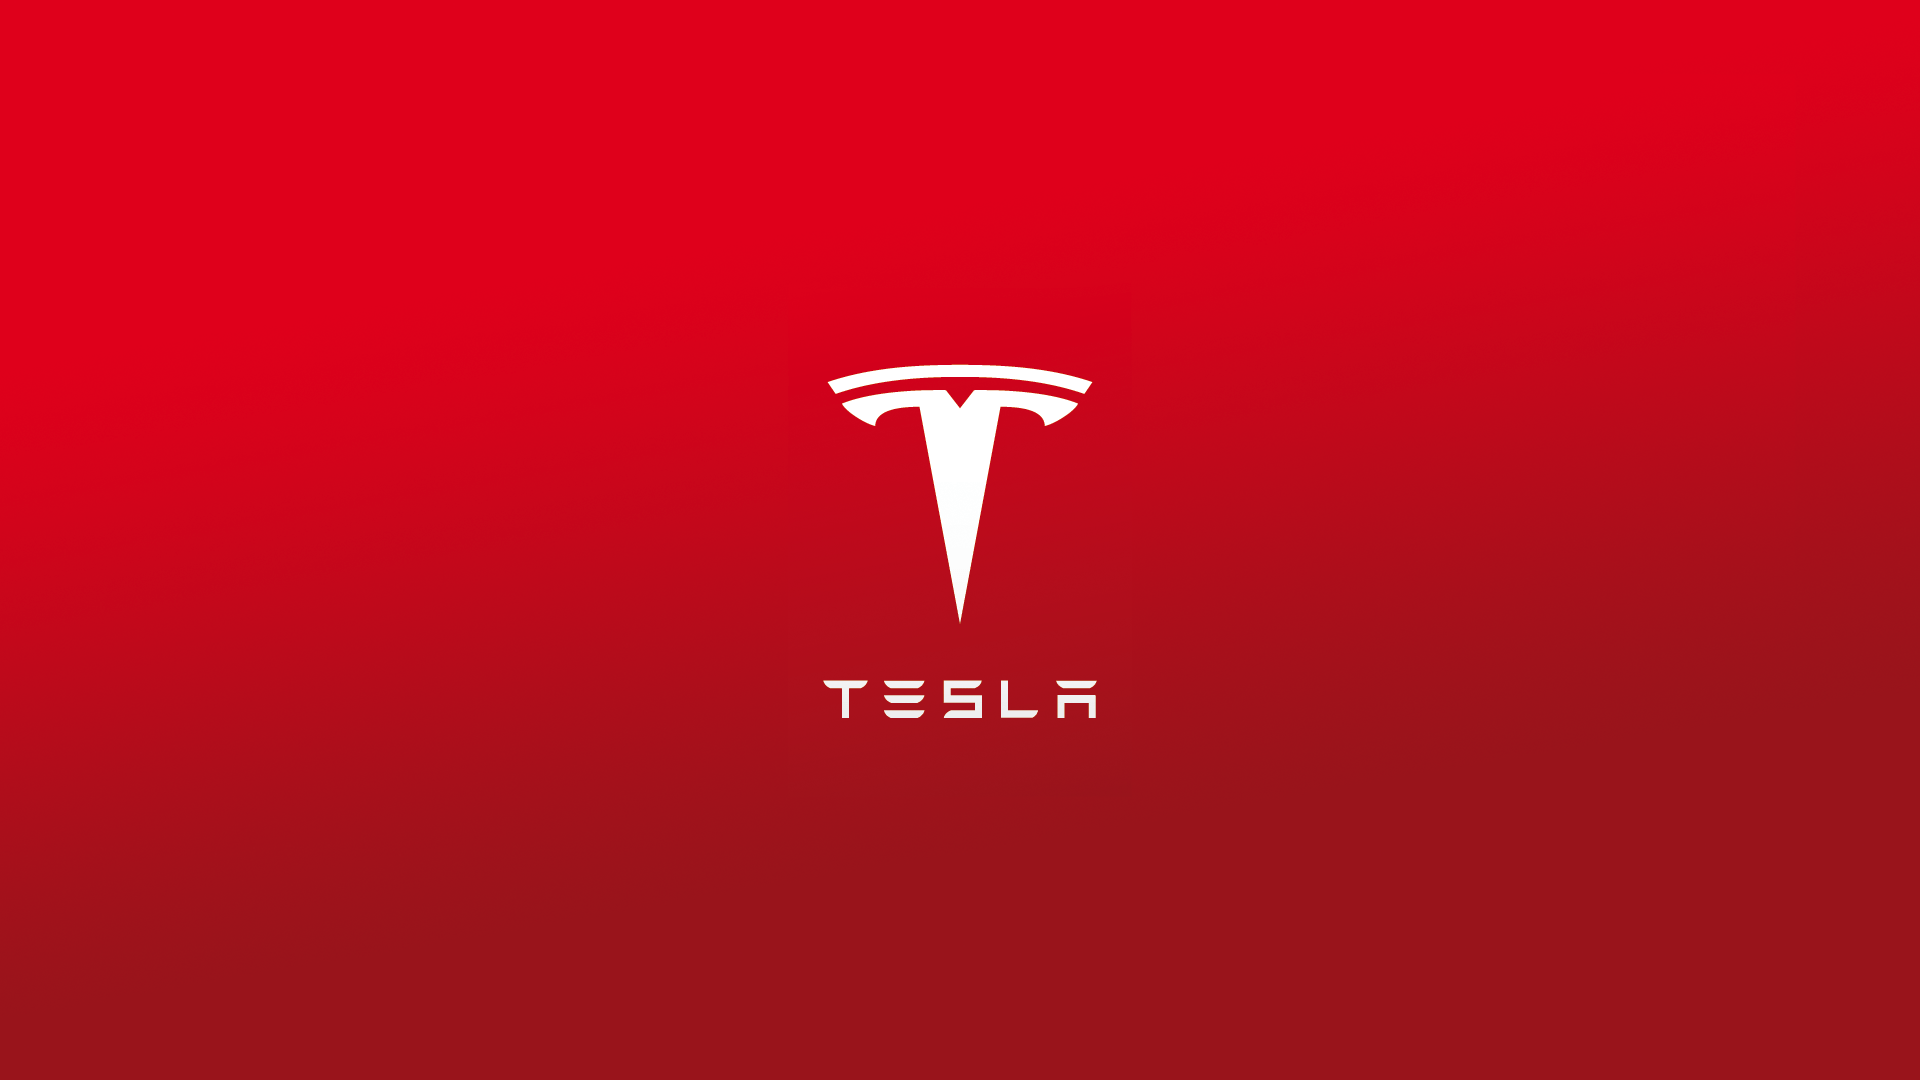 Testla Logo Background Red Phone and Desktop Wallpapers 1920x1080